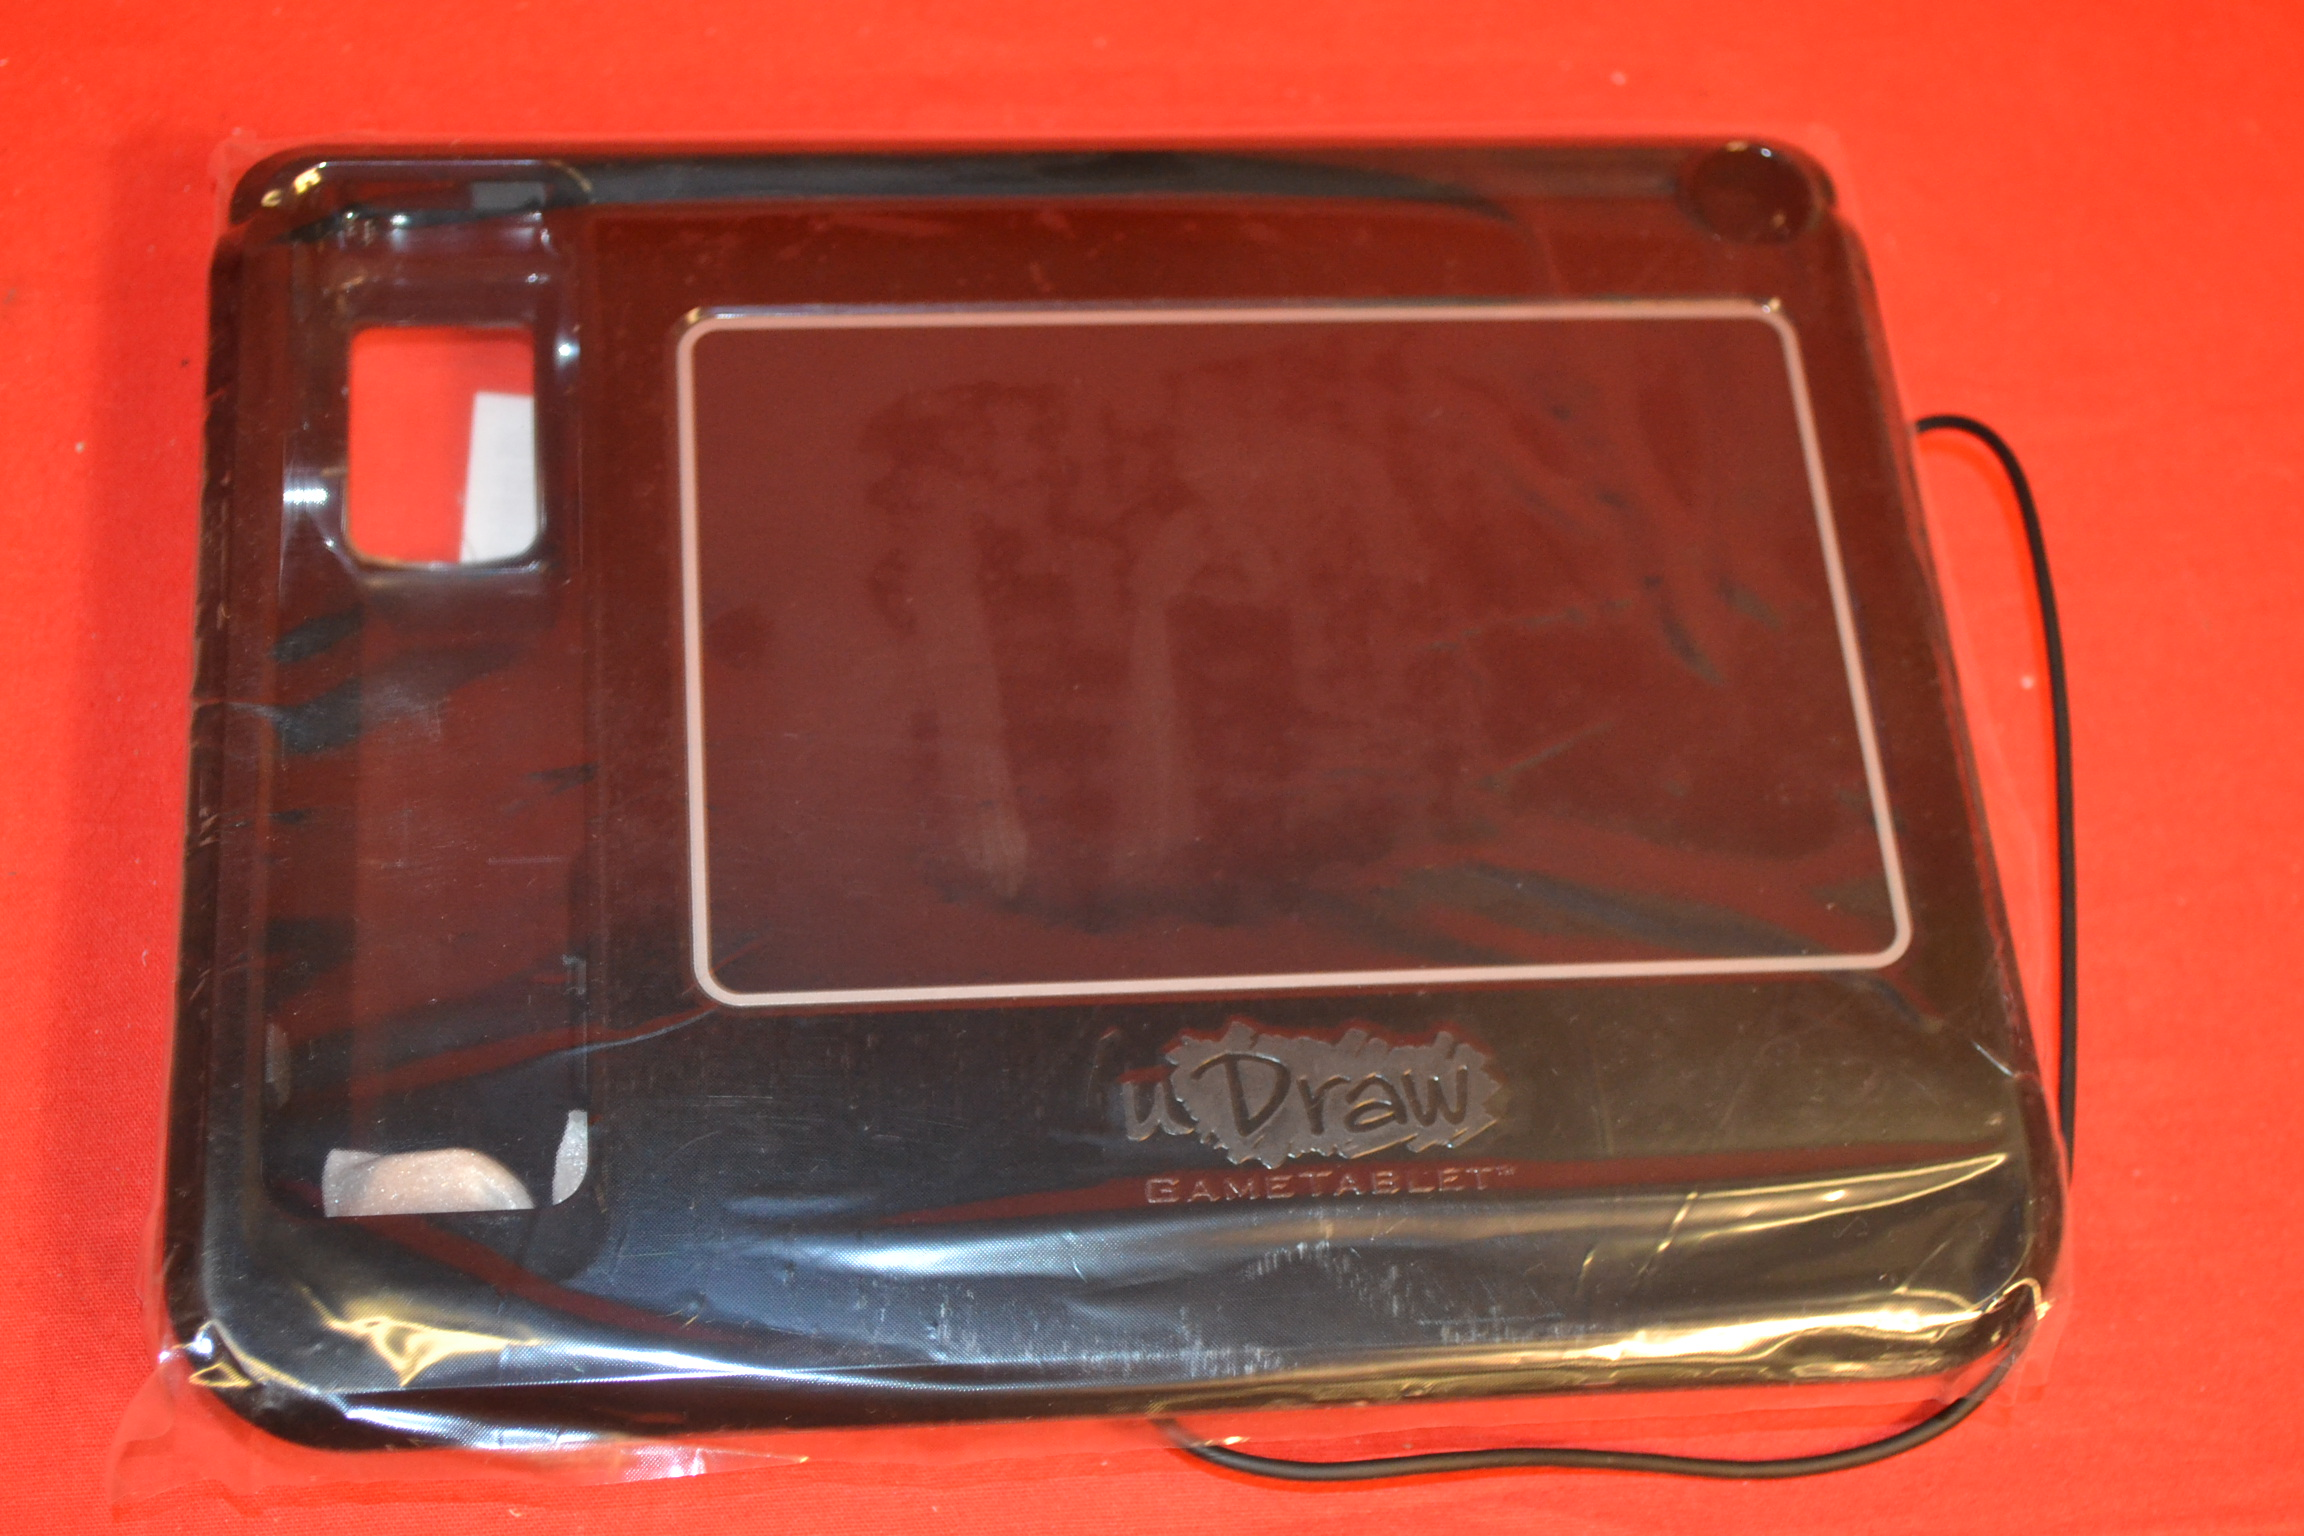 udraw game tablet instruction manual